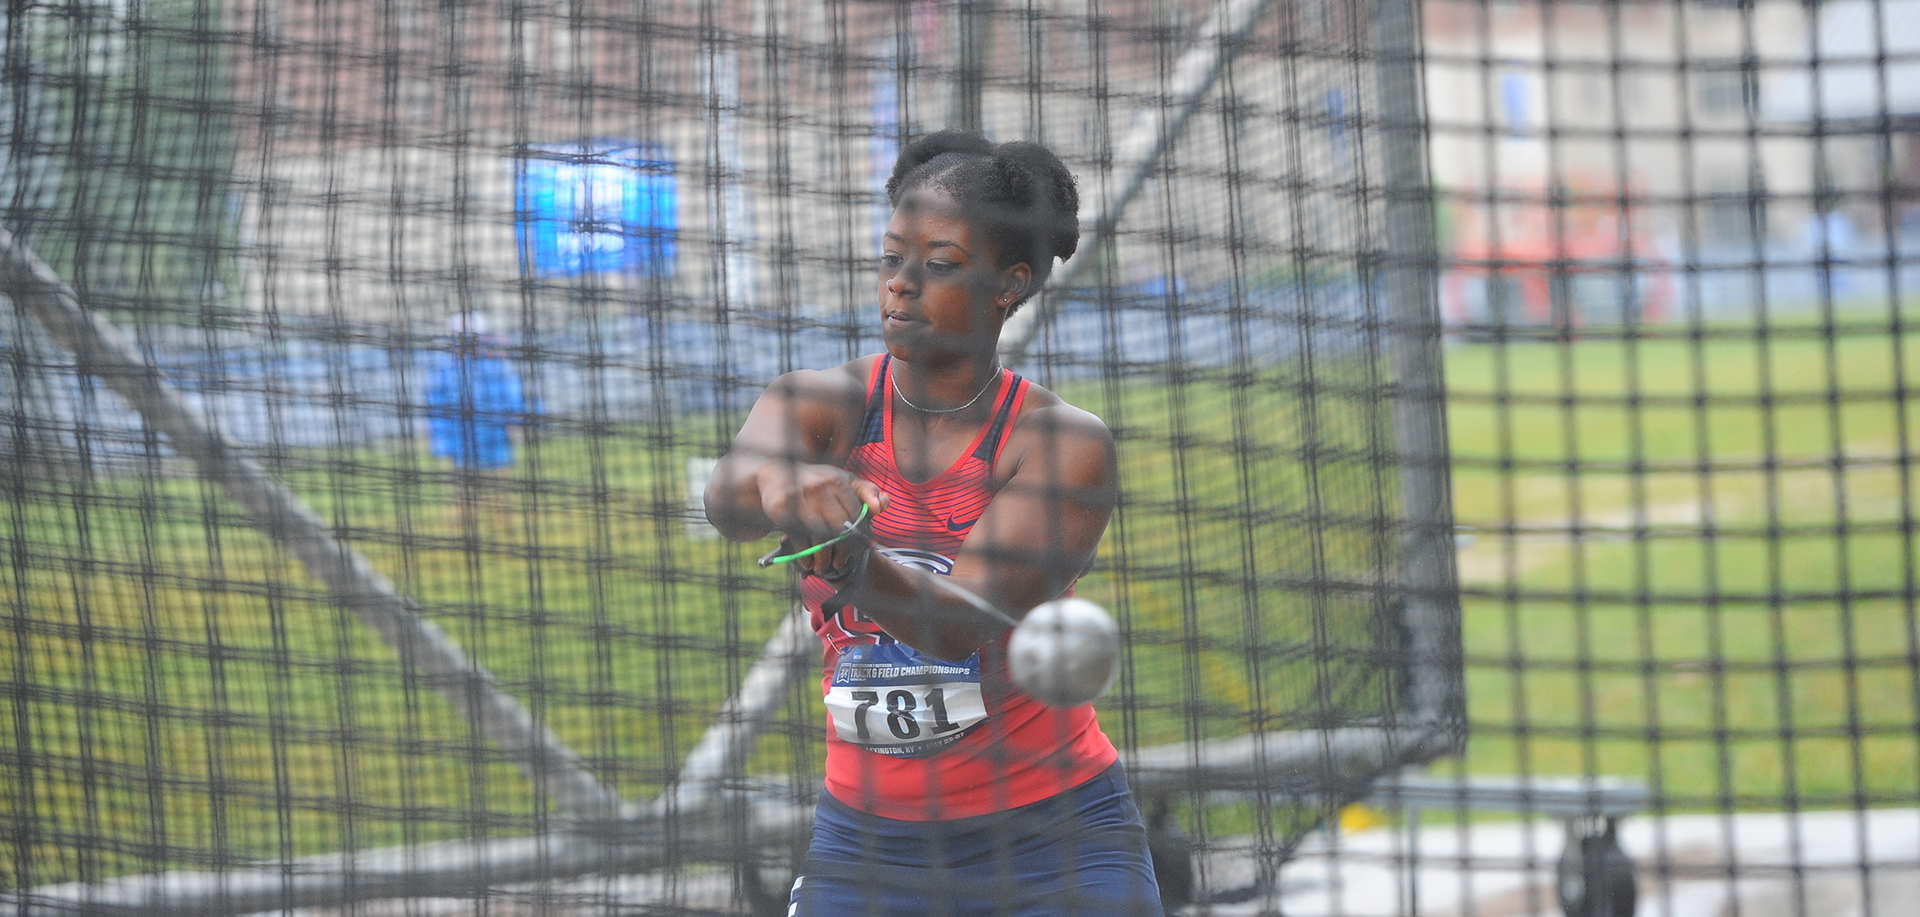 Dasiana Larson was the women's shot put runner-up, Friday at the VertKlasse Meeting.